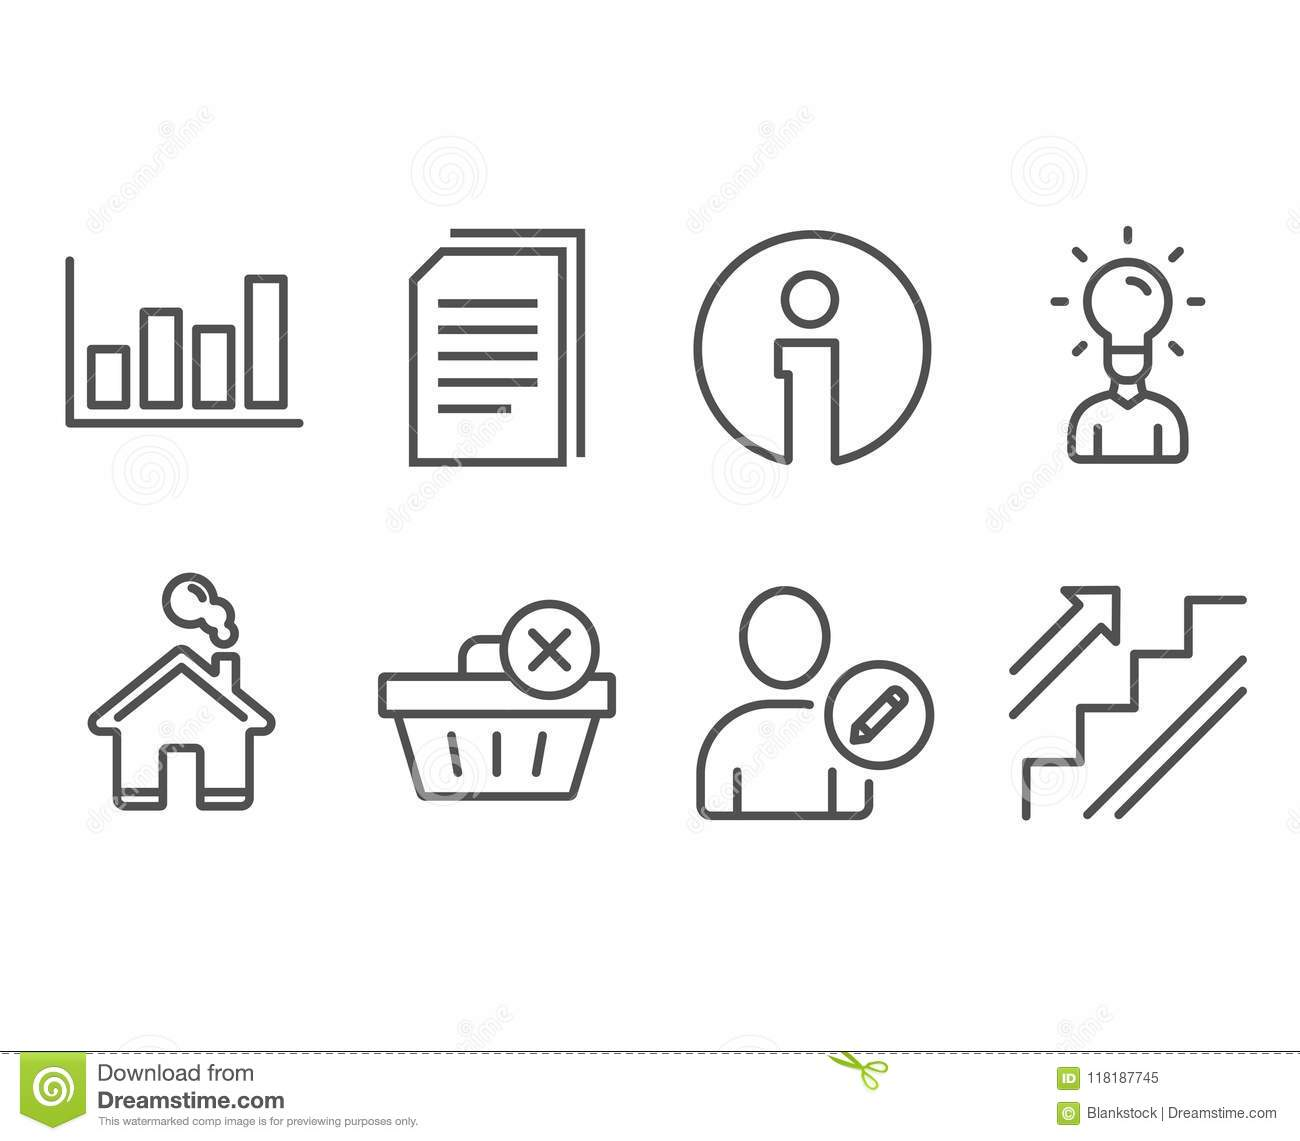 hight resolution of edit user delete purchase and education icons copy files report diagram and stairs